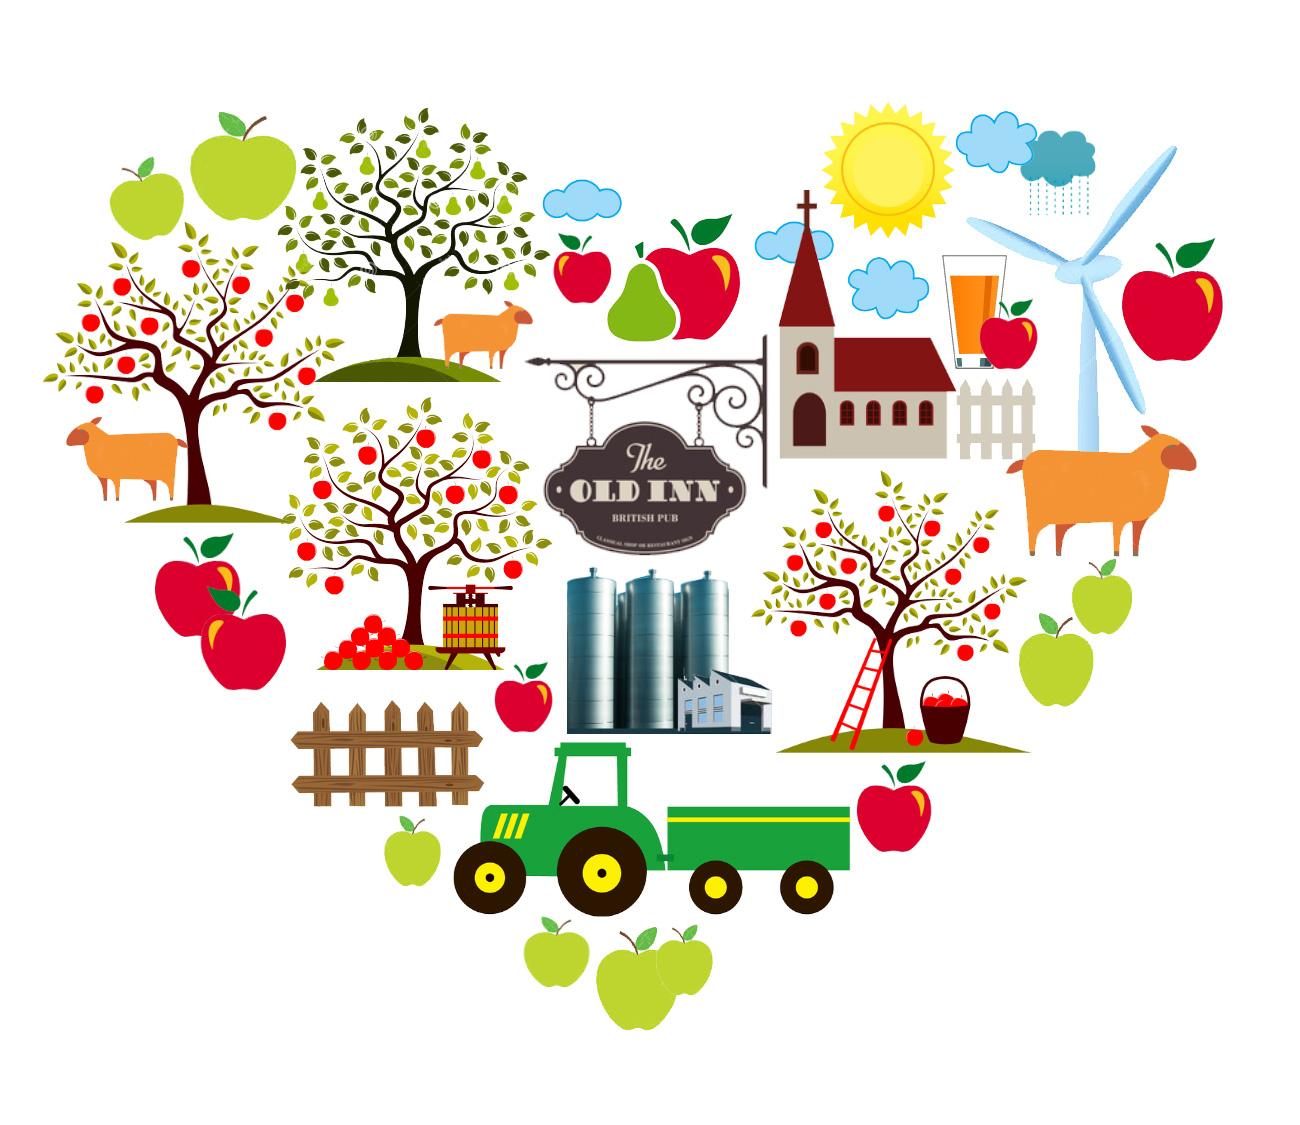 Cider Heart of the Community